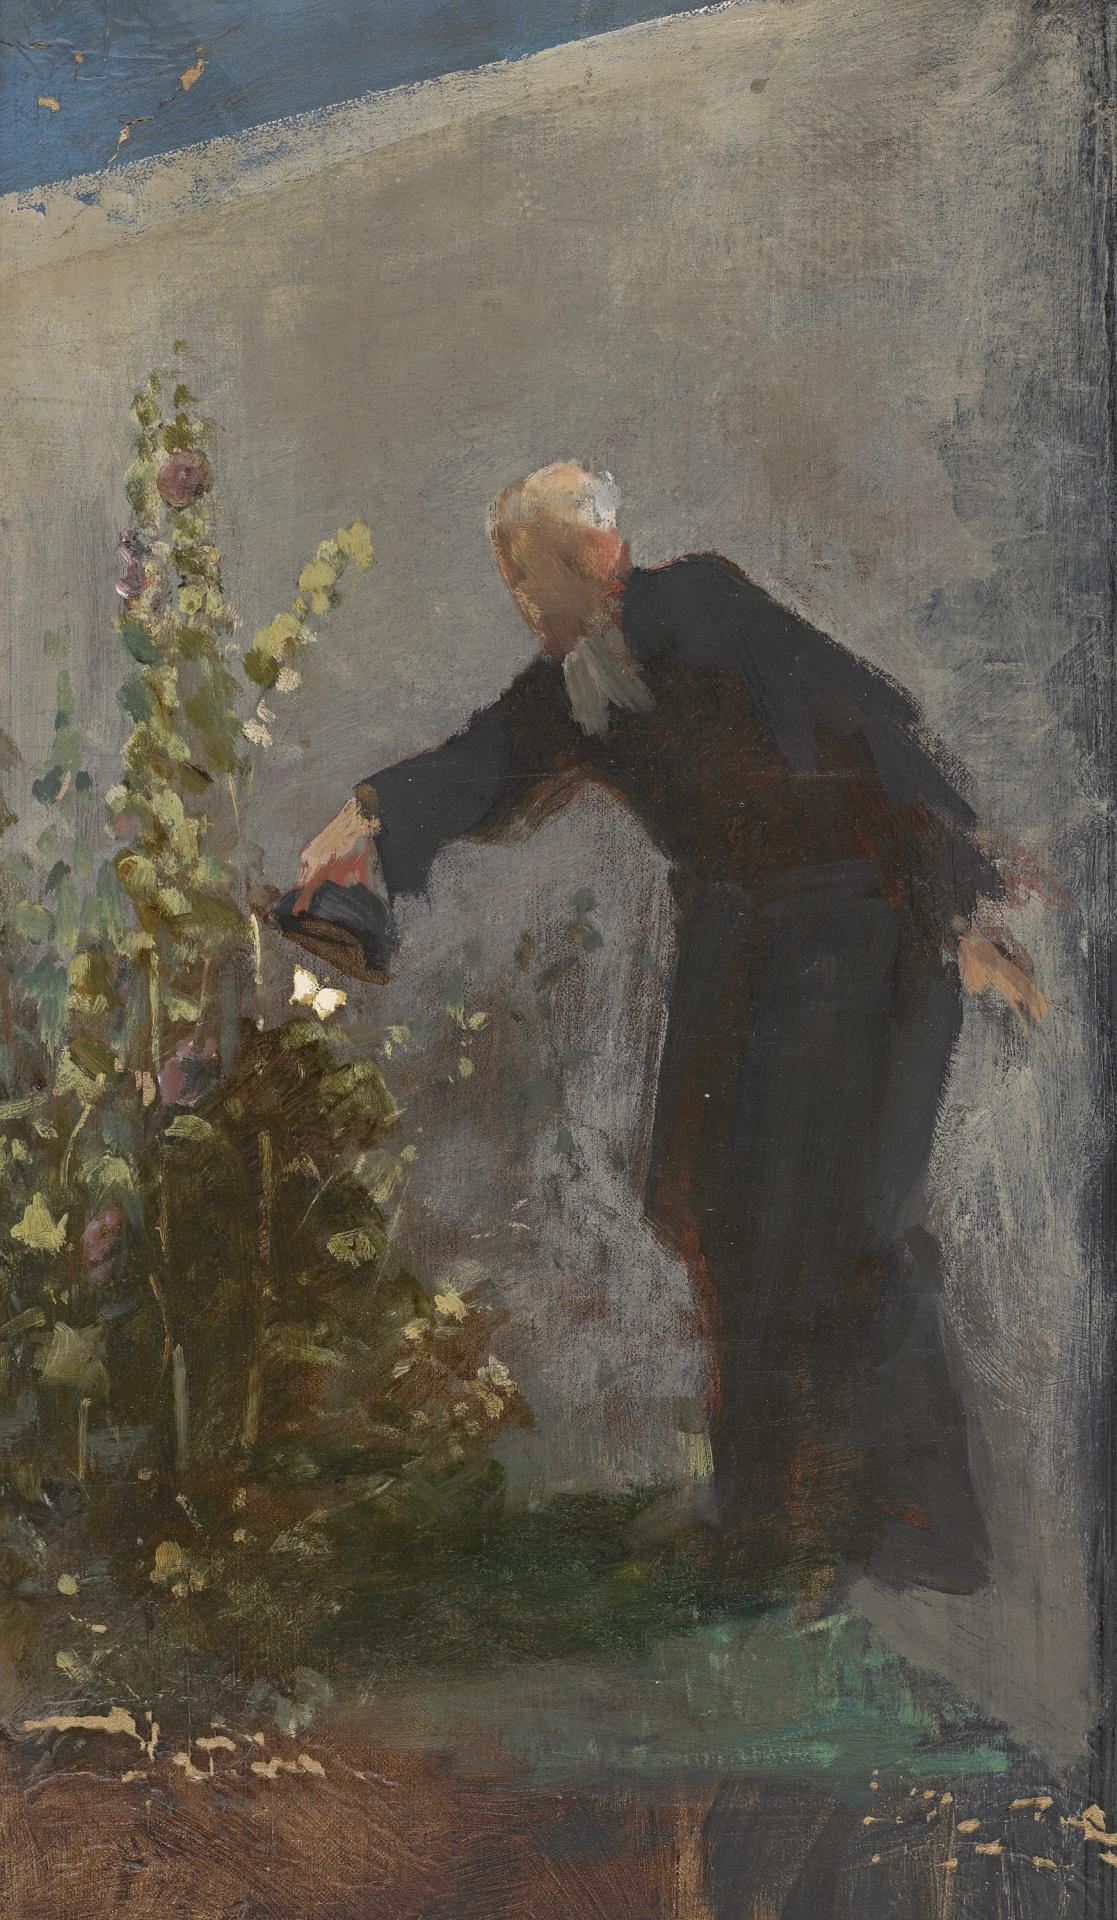 Study for picture of man and butterfly